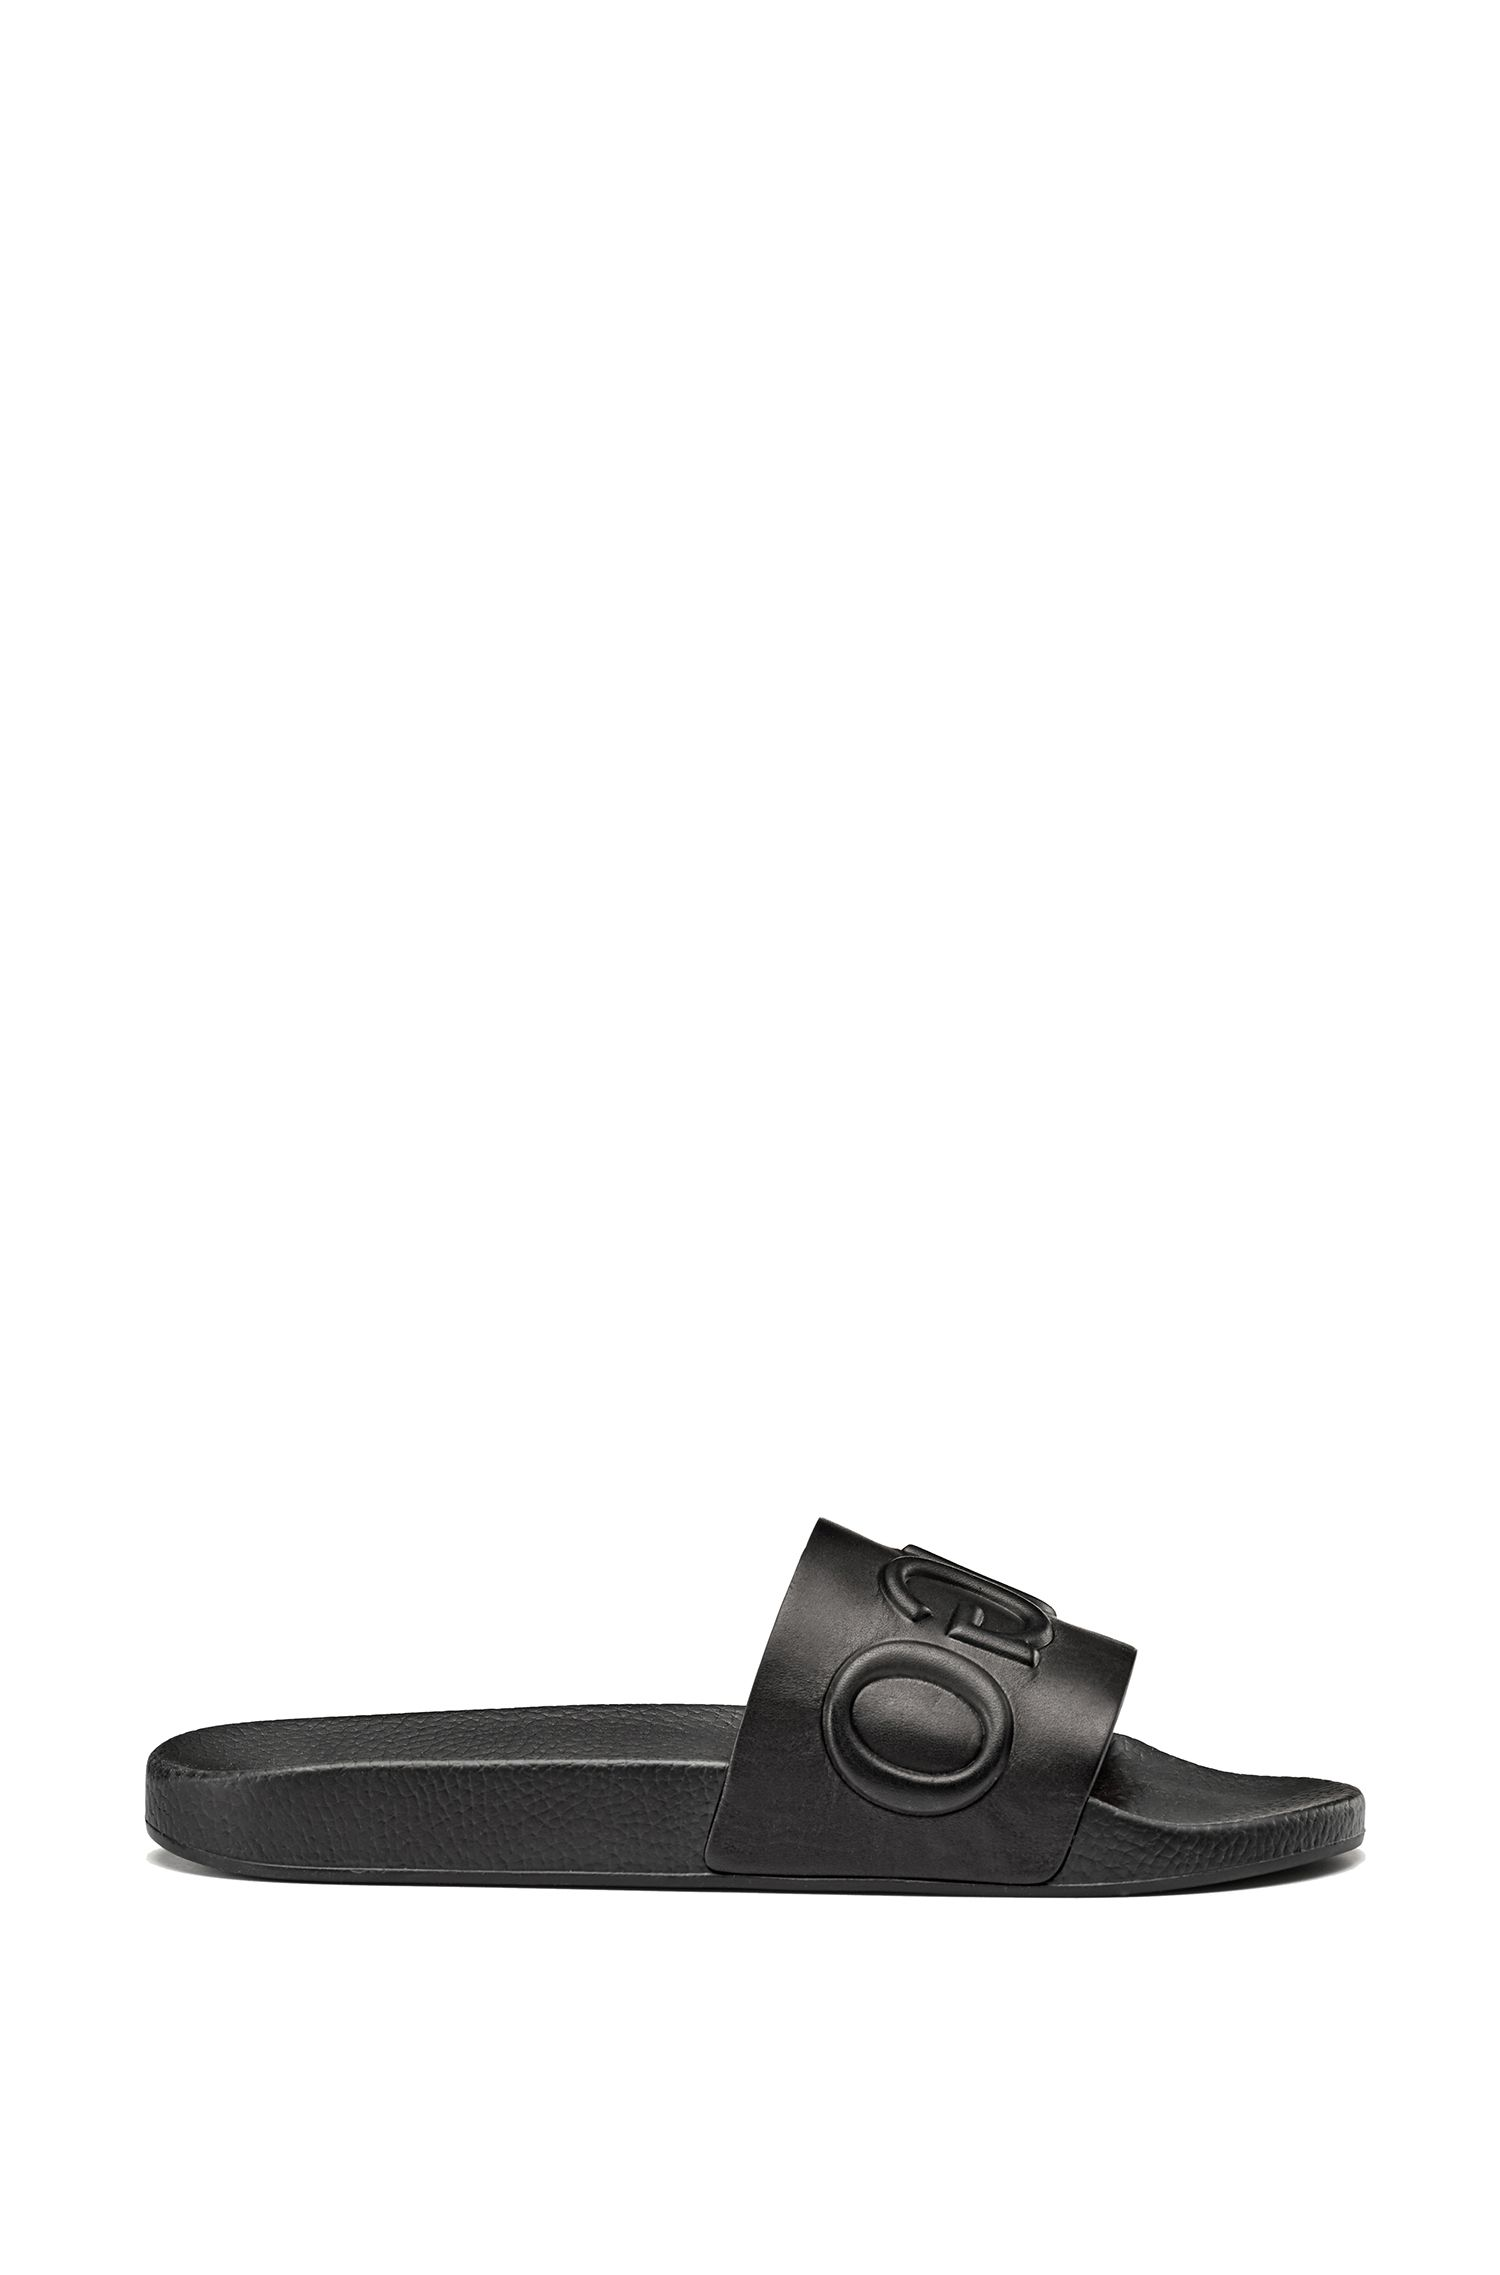 Calf-leather slide sandals with raised logo